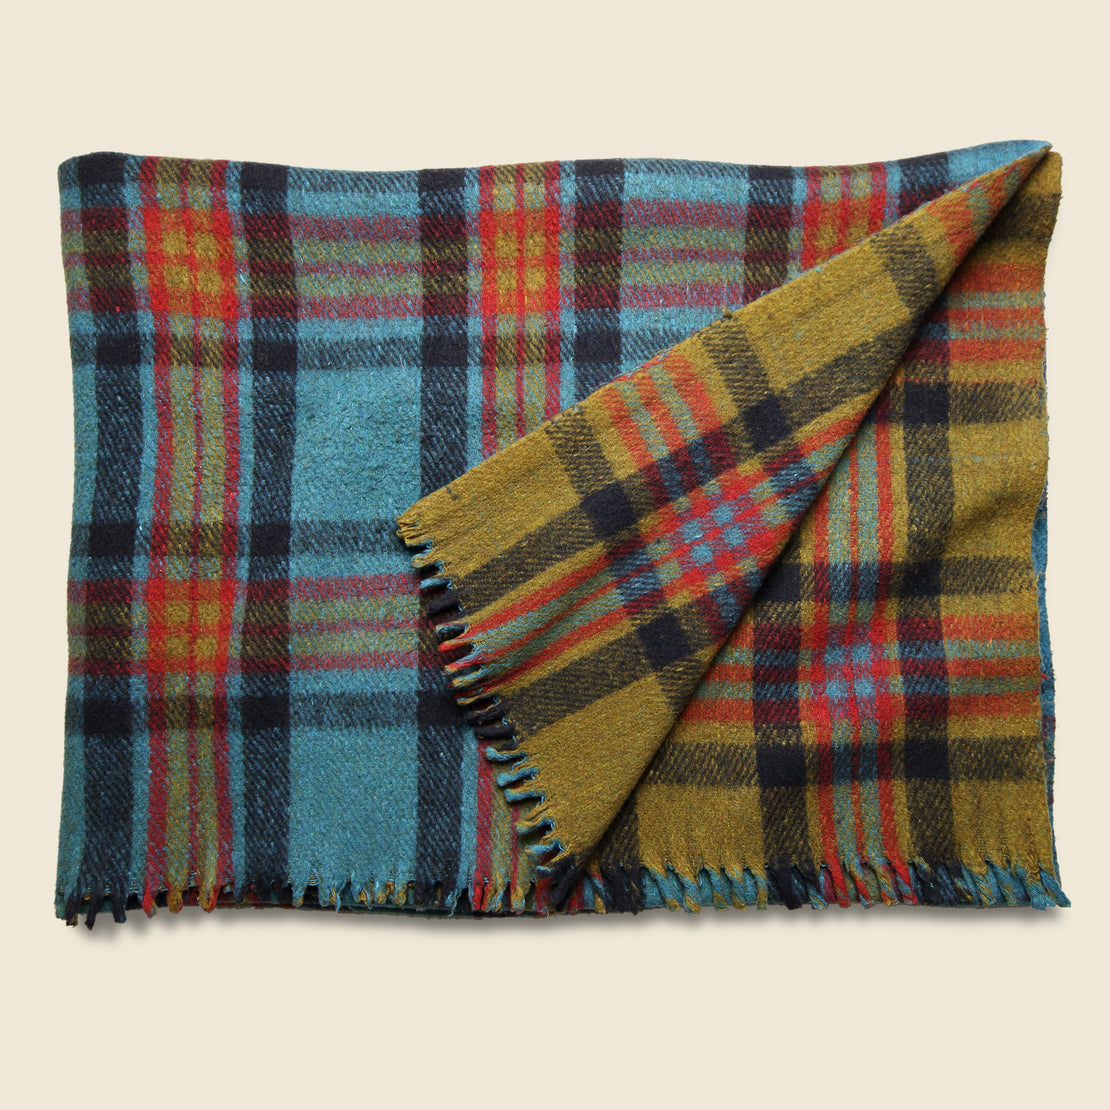 Vintage Vintage Indian Wool Plaid Blanket - Olive/Red/Teal